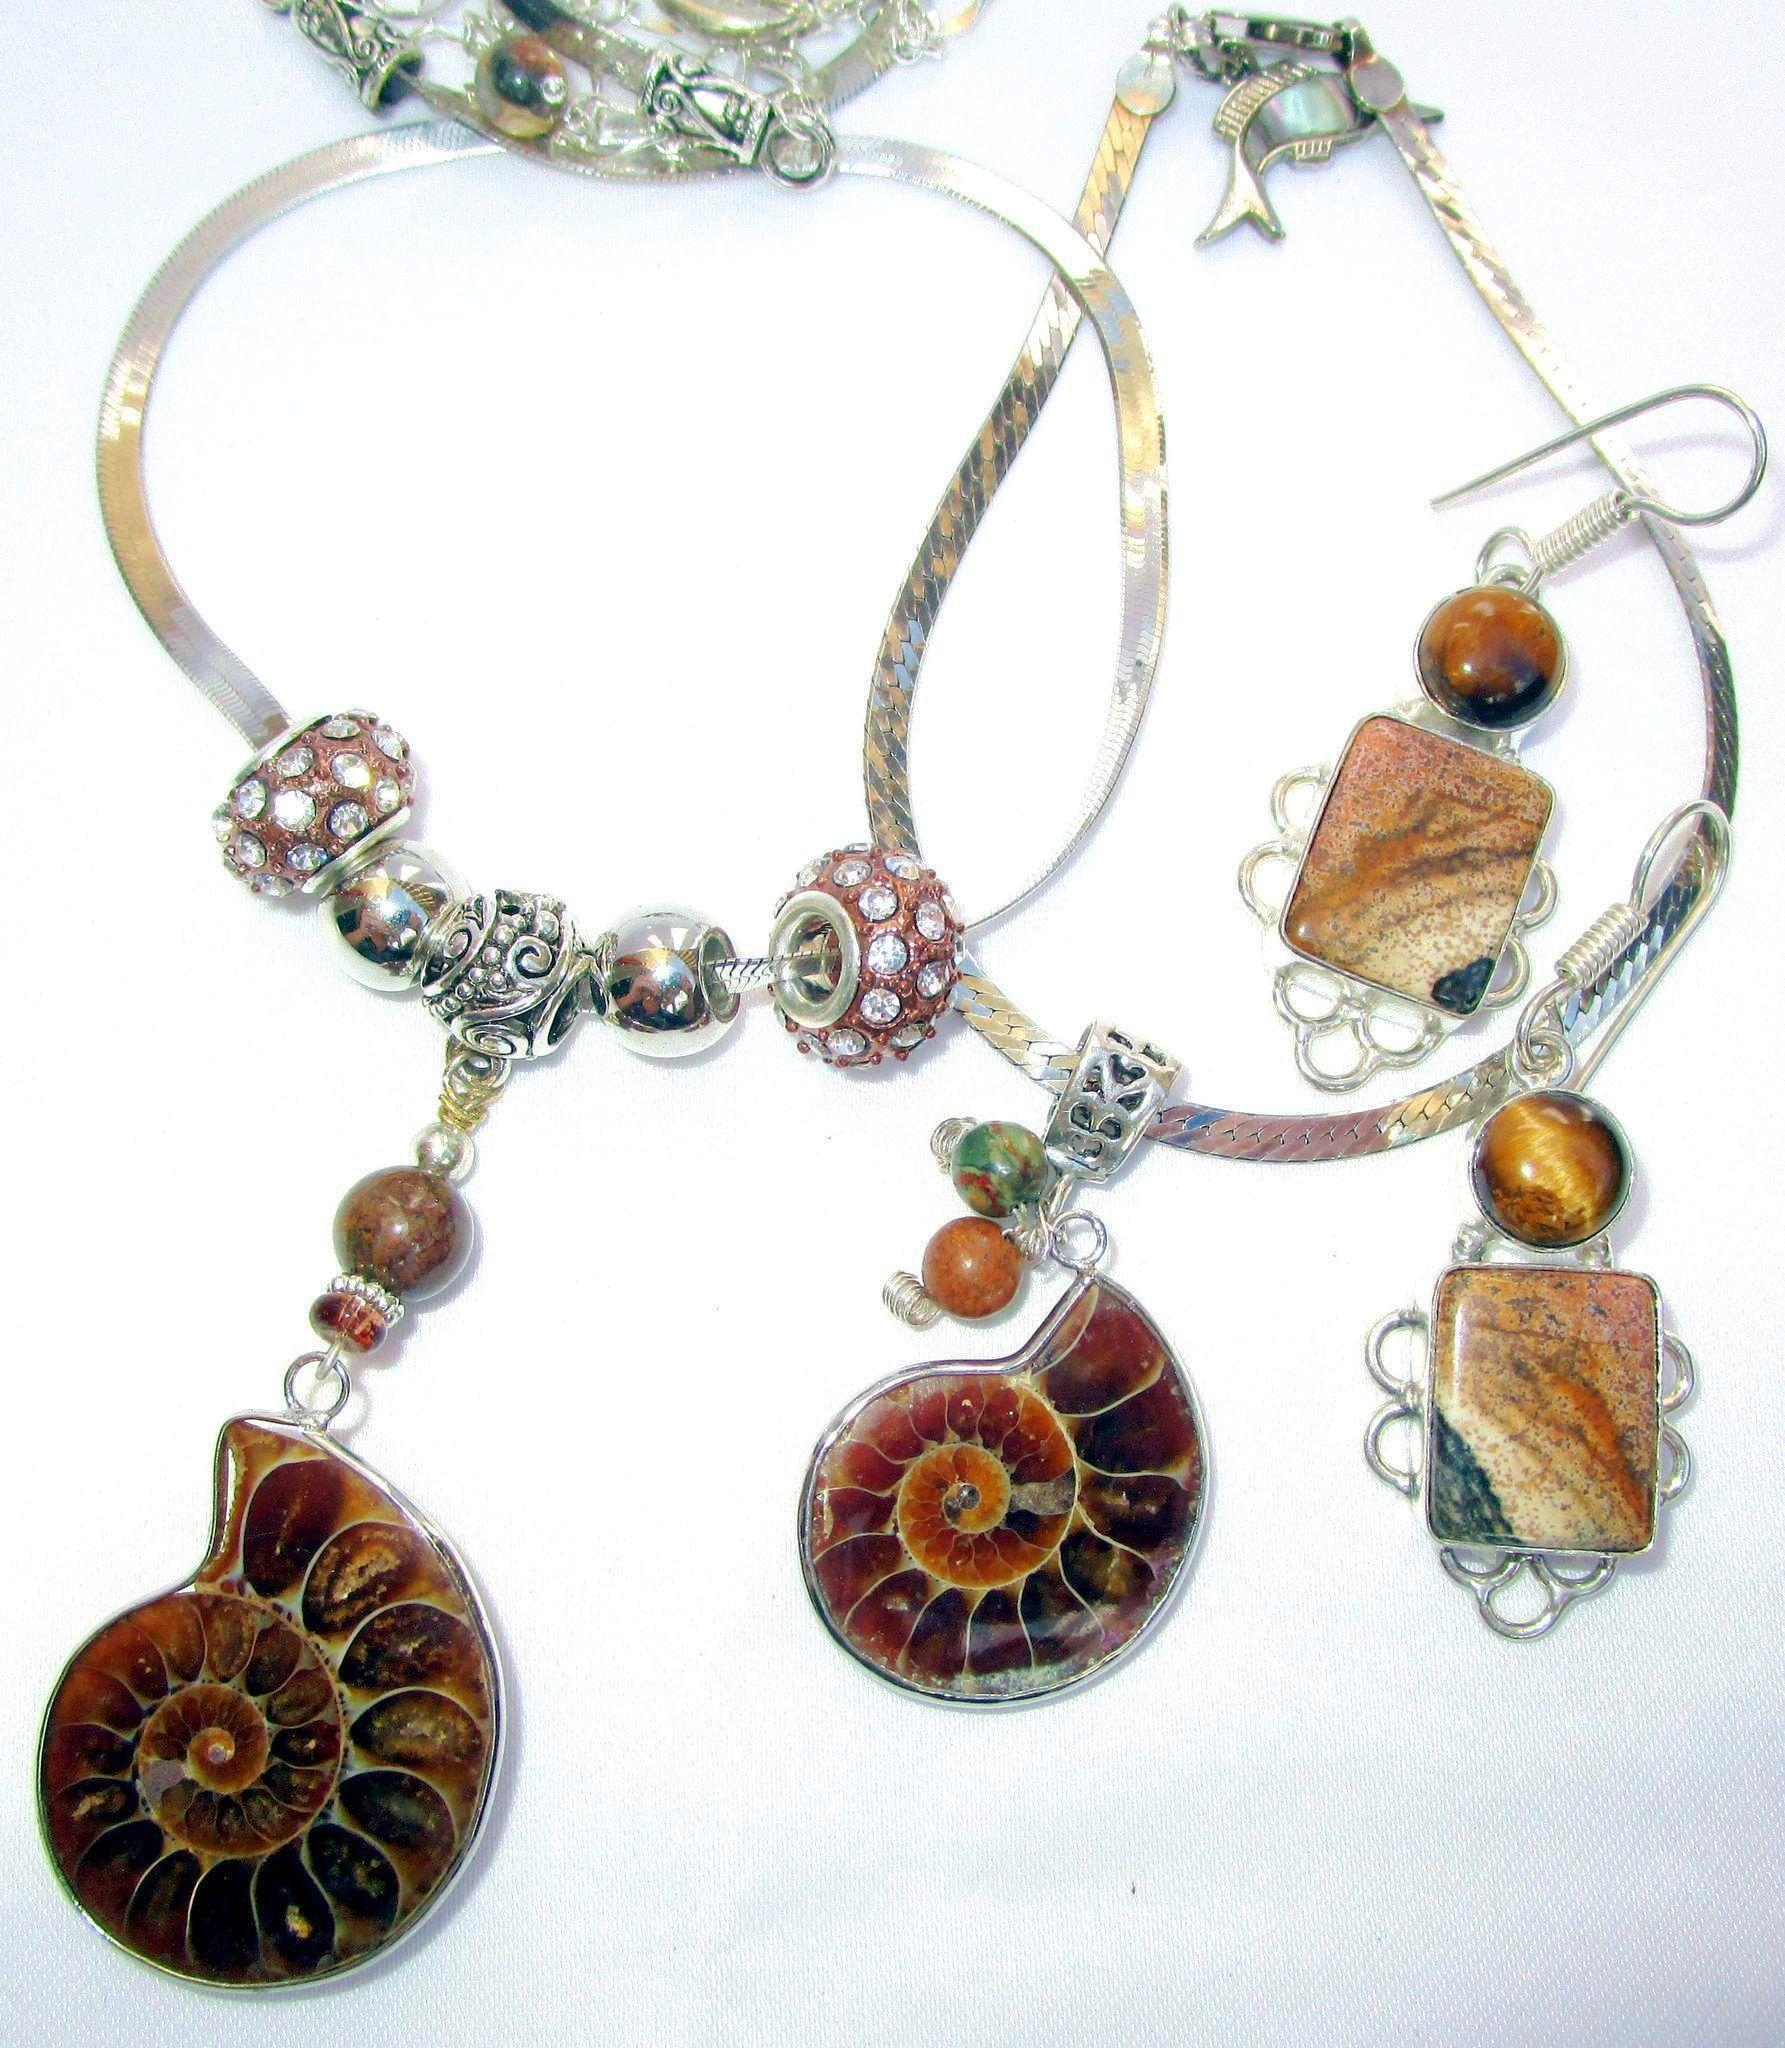 Sterling Silver Snake Chain with Ammonite Necklace and Bracelet